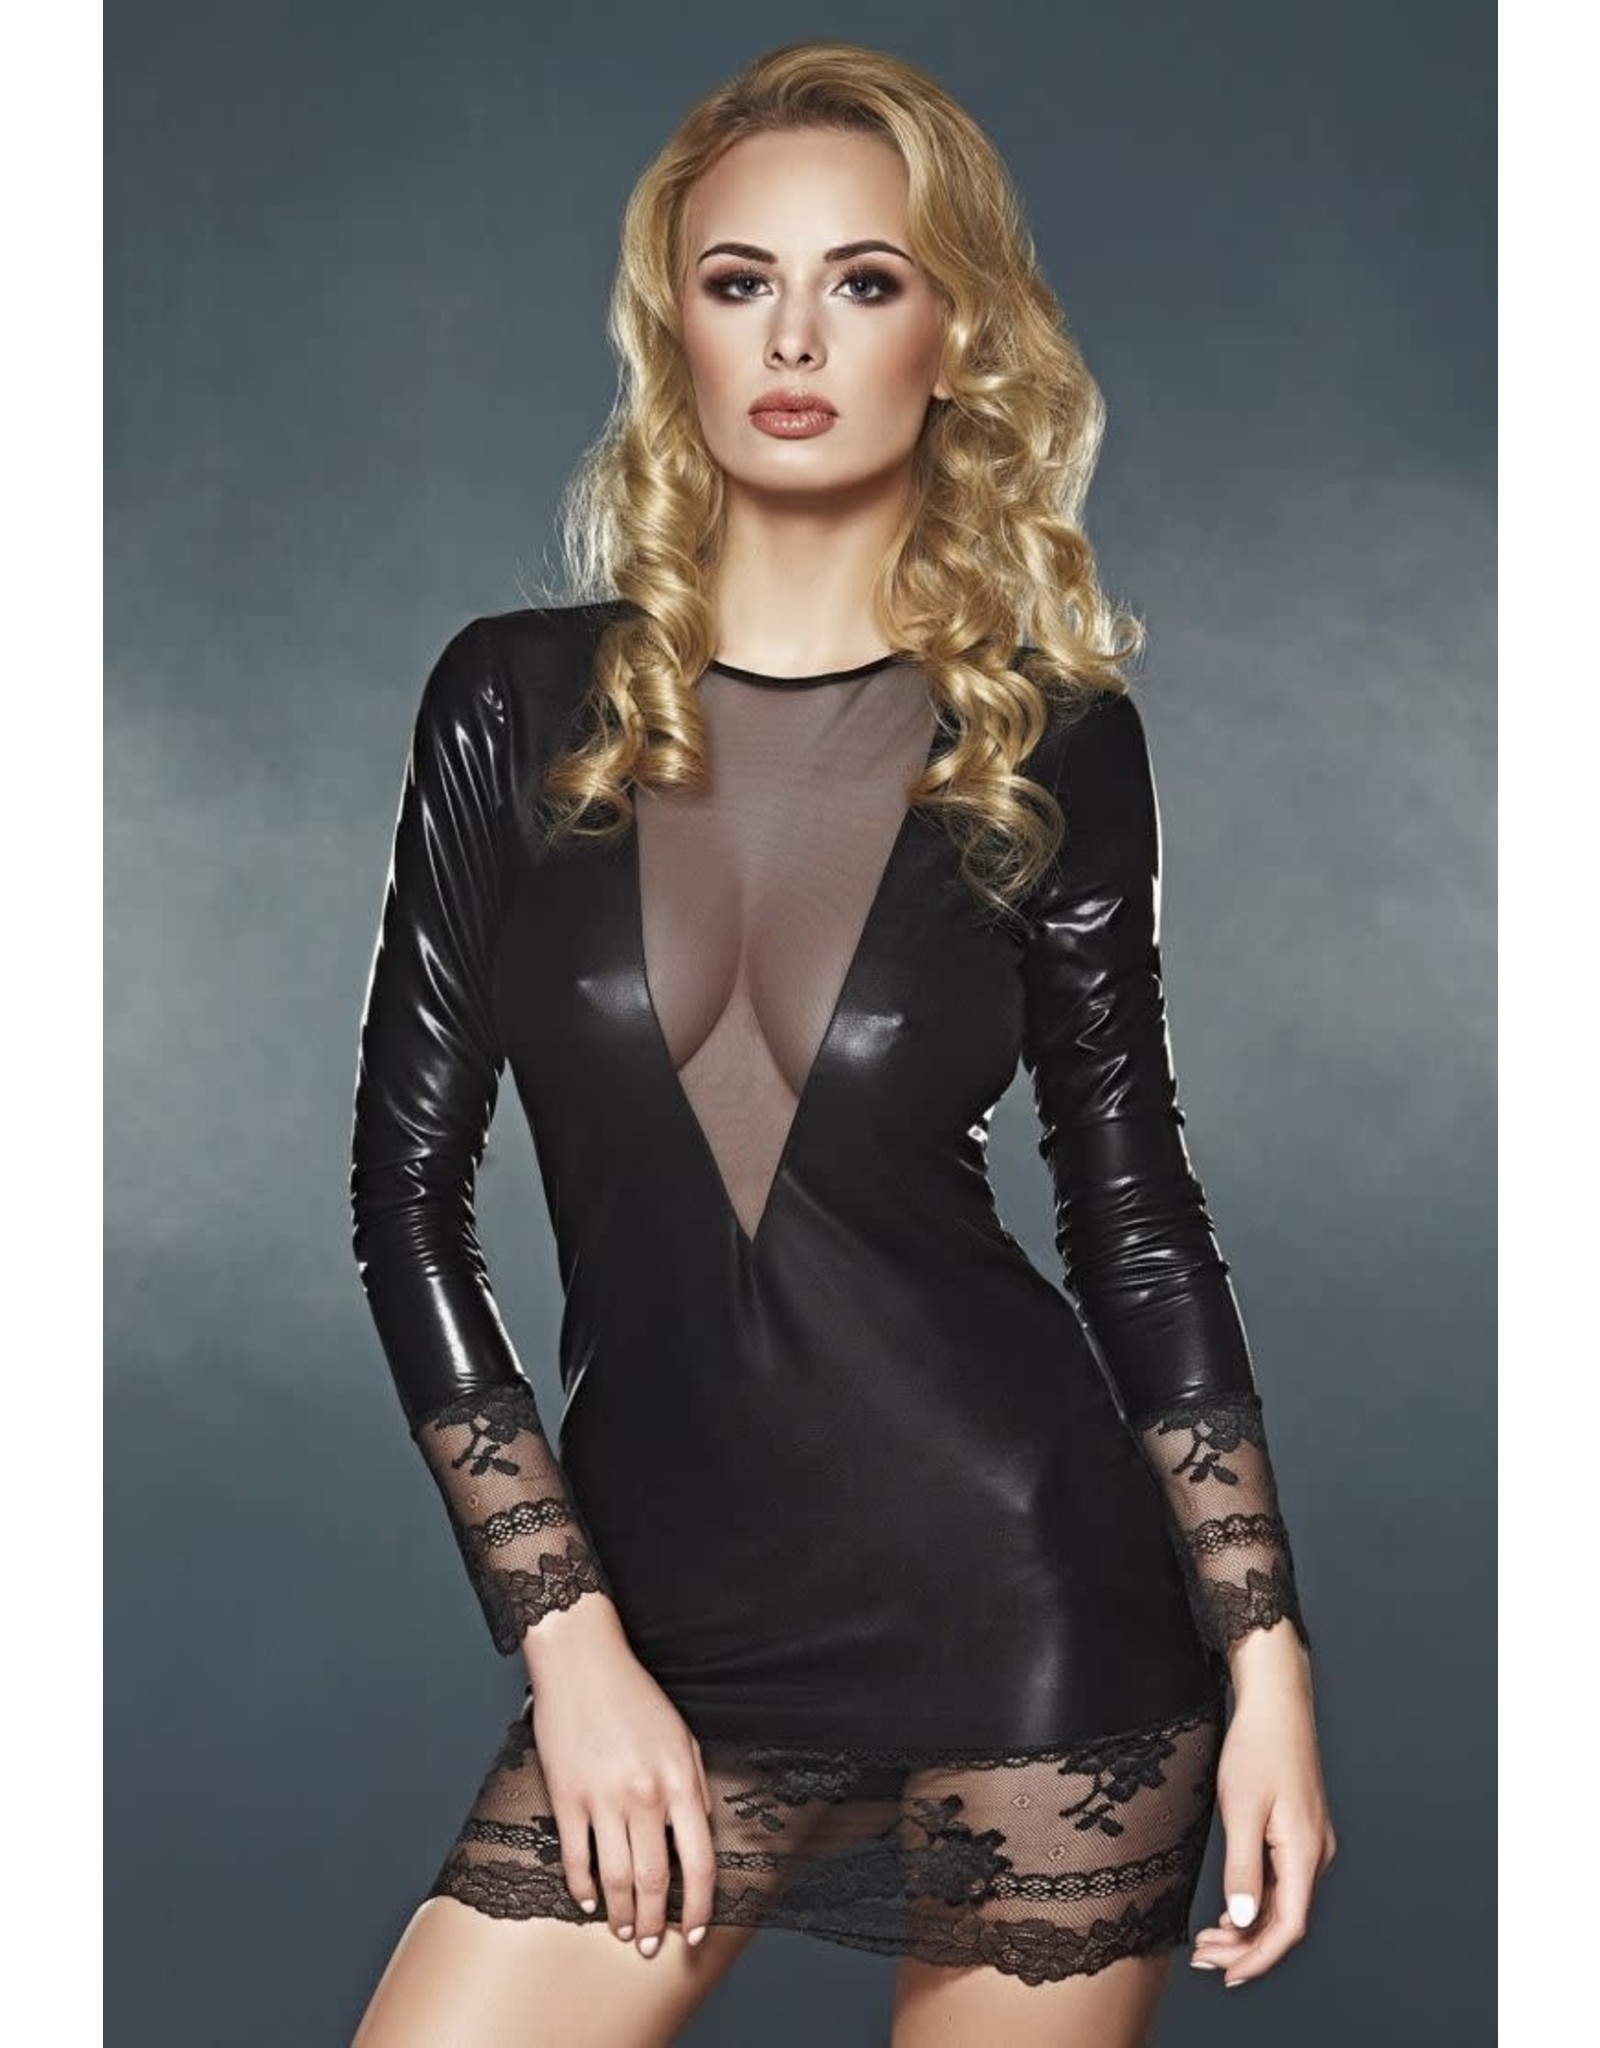 7 HEAVEN 7 HEAVEN - ELEGANT LONG SLEEVE WET LOOK DRESS WITH LACE AND TULLE DETAILS - LARGE